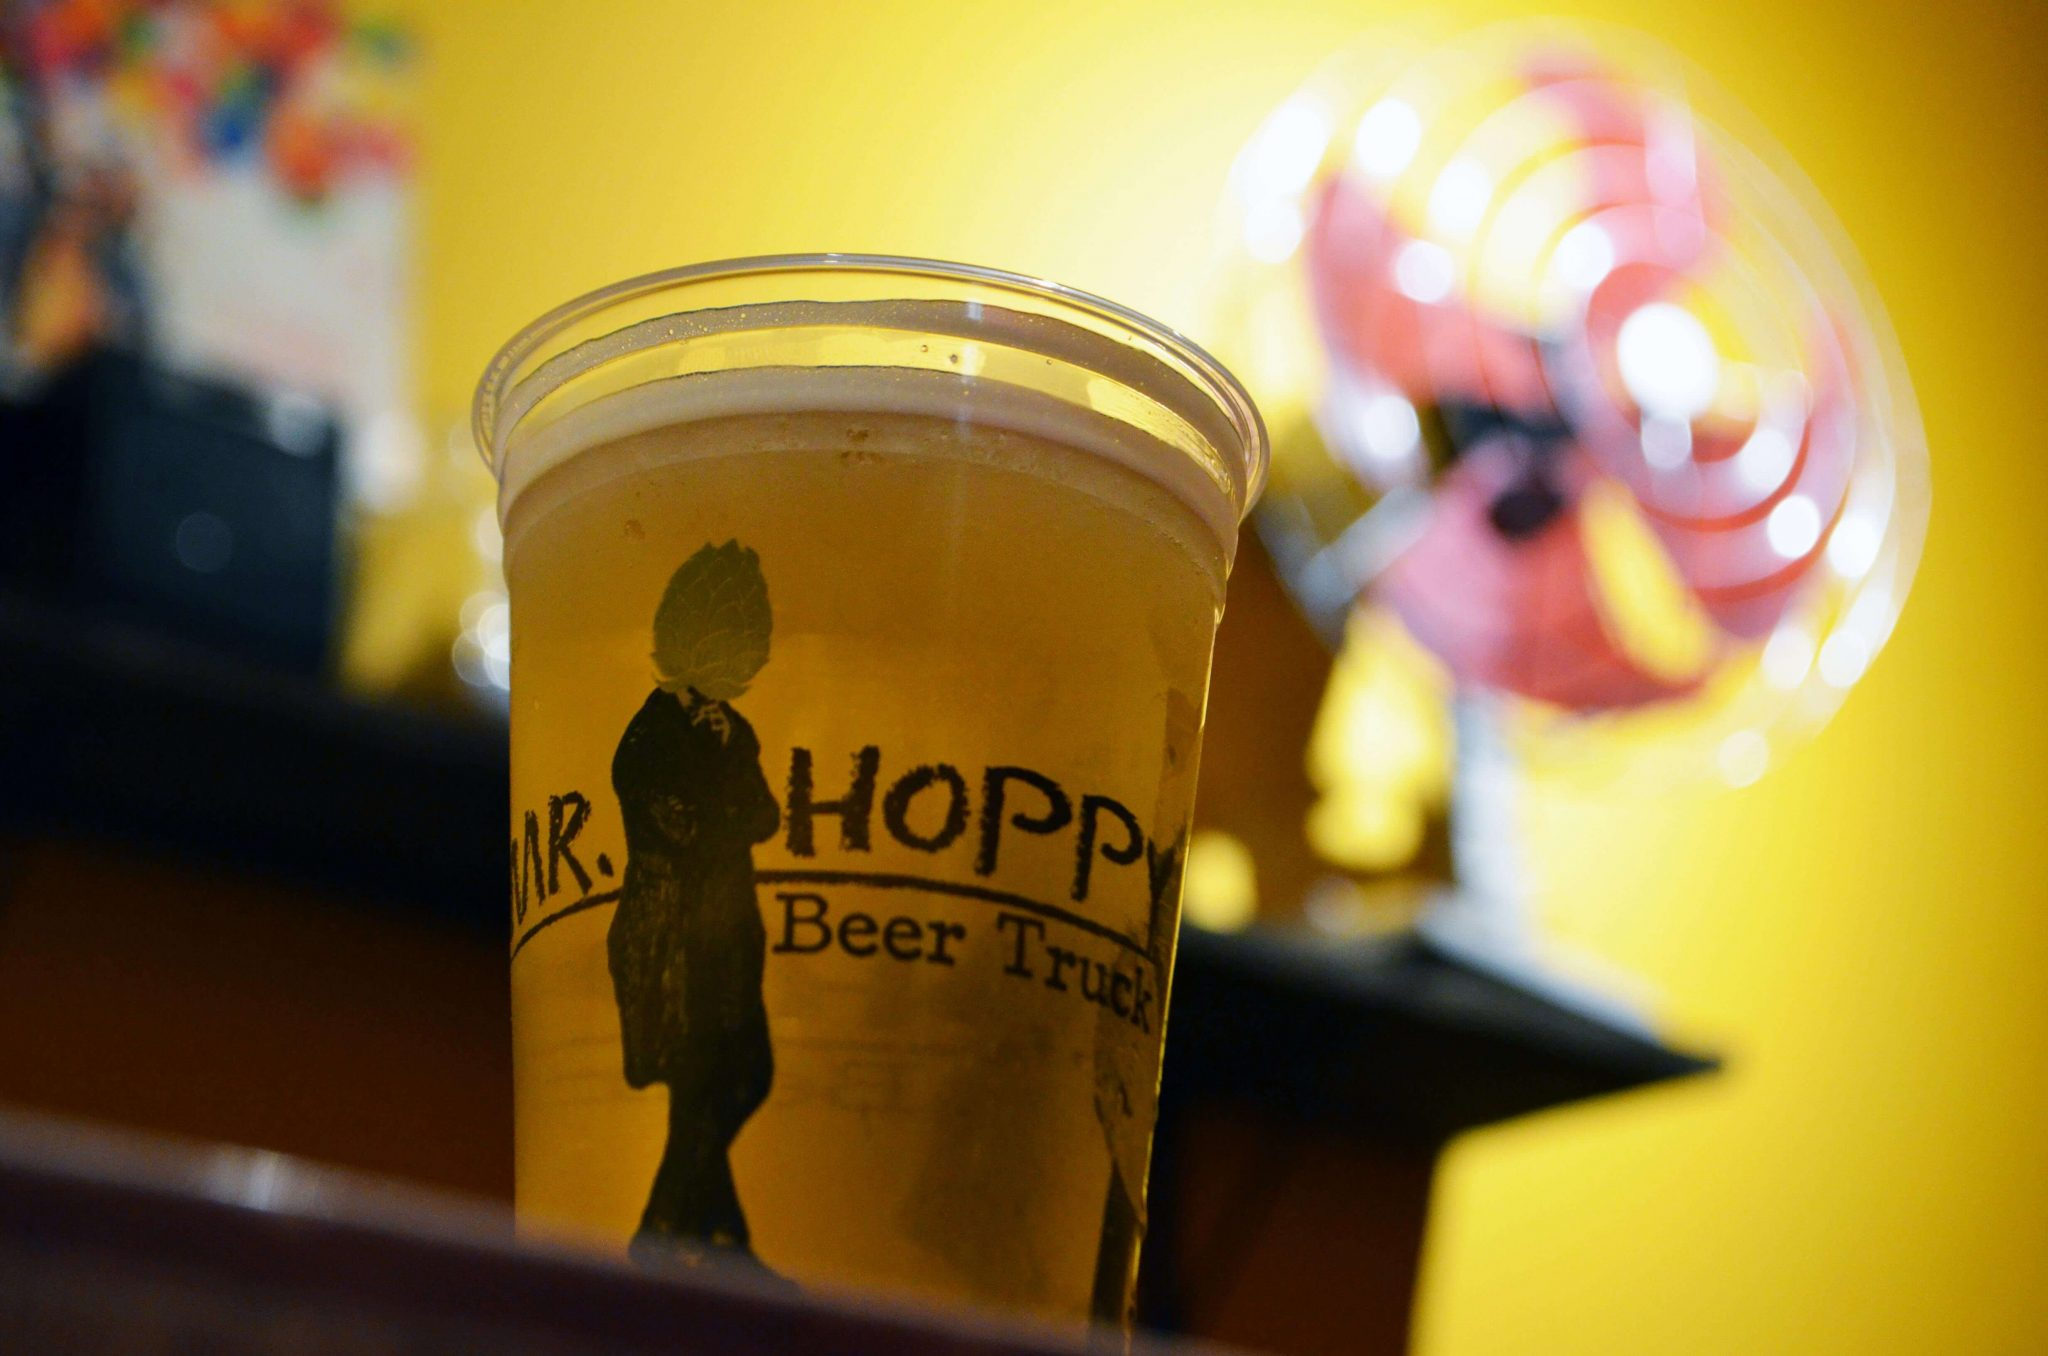 Chope Mr Hoppy (1)